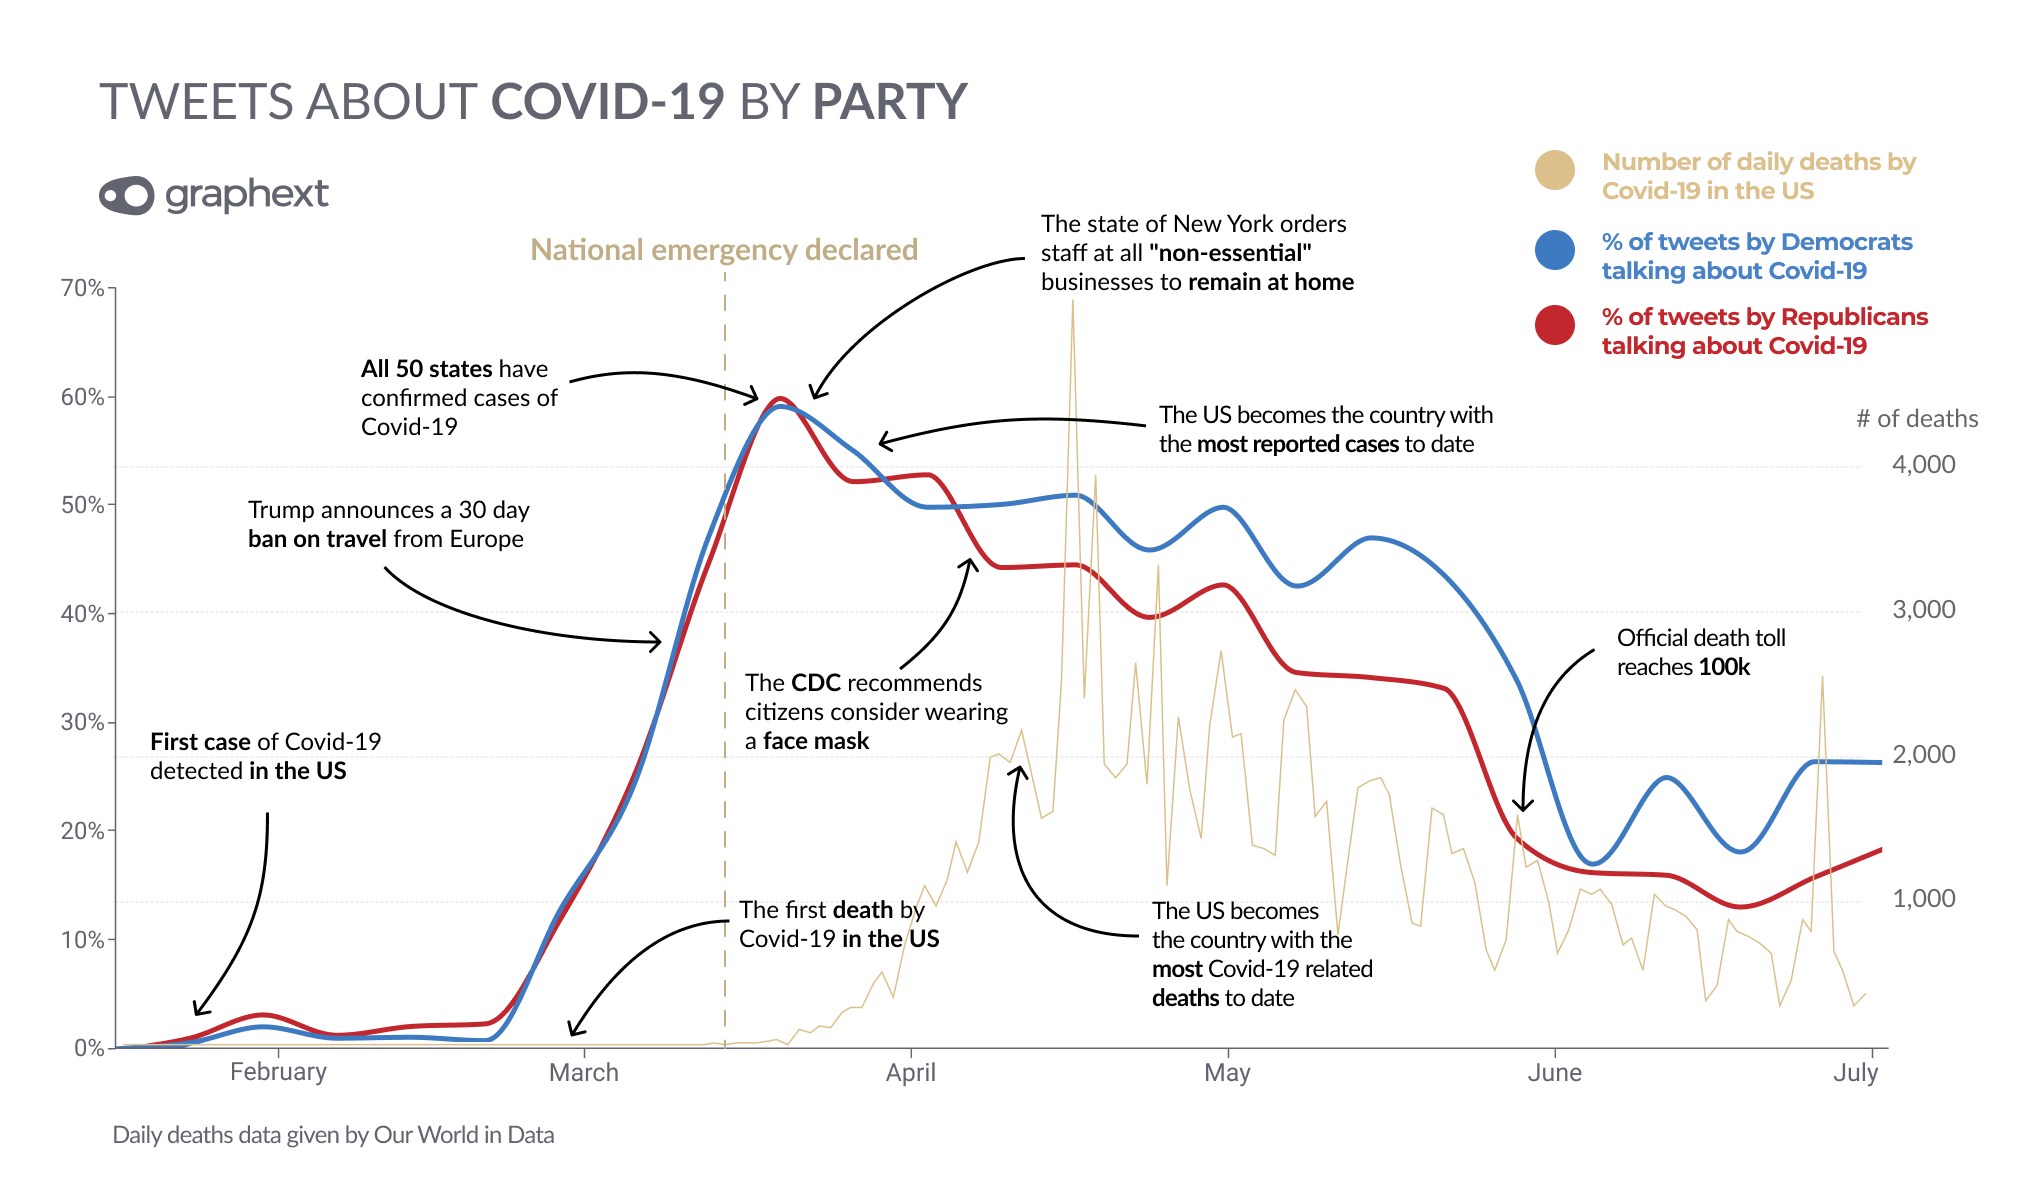 A time-series visualization showing tweets about COVID-19 by party.